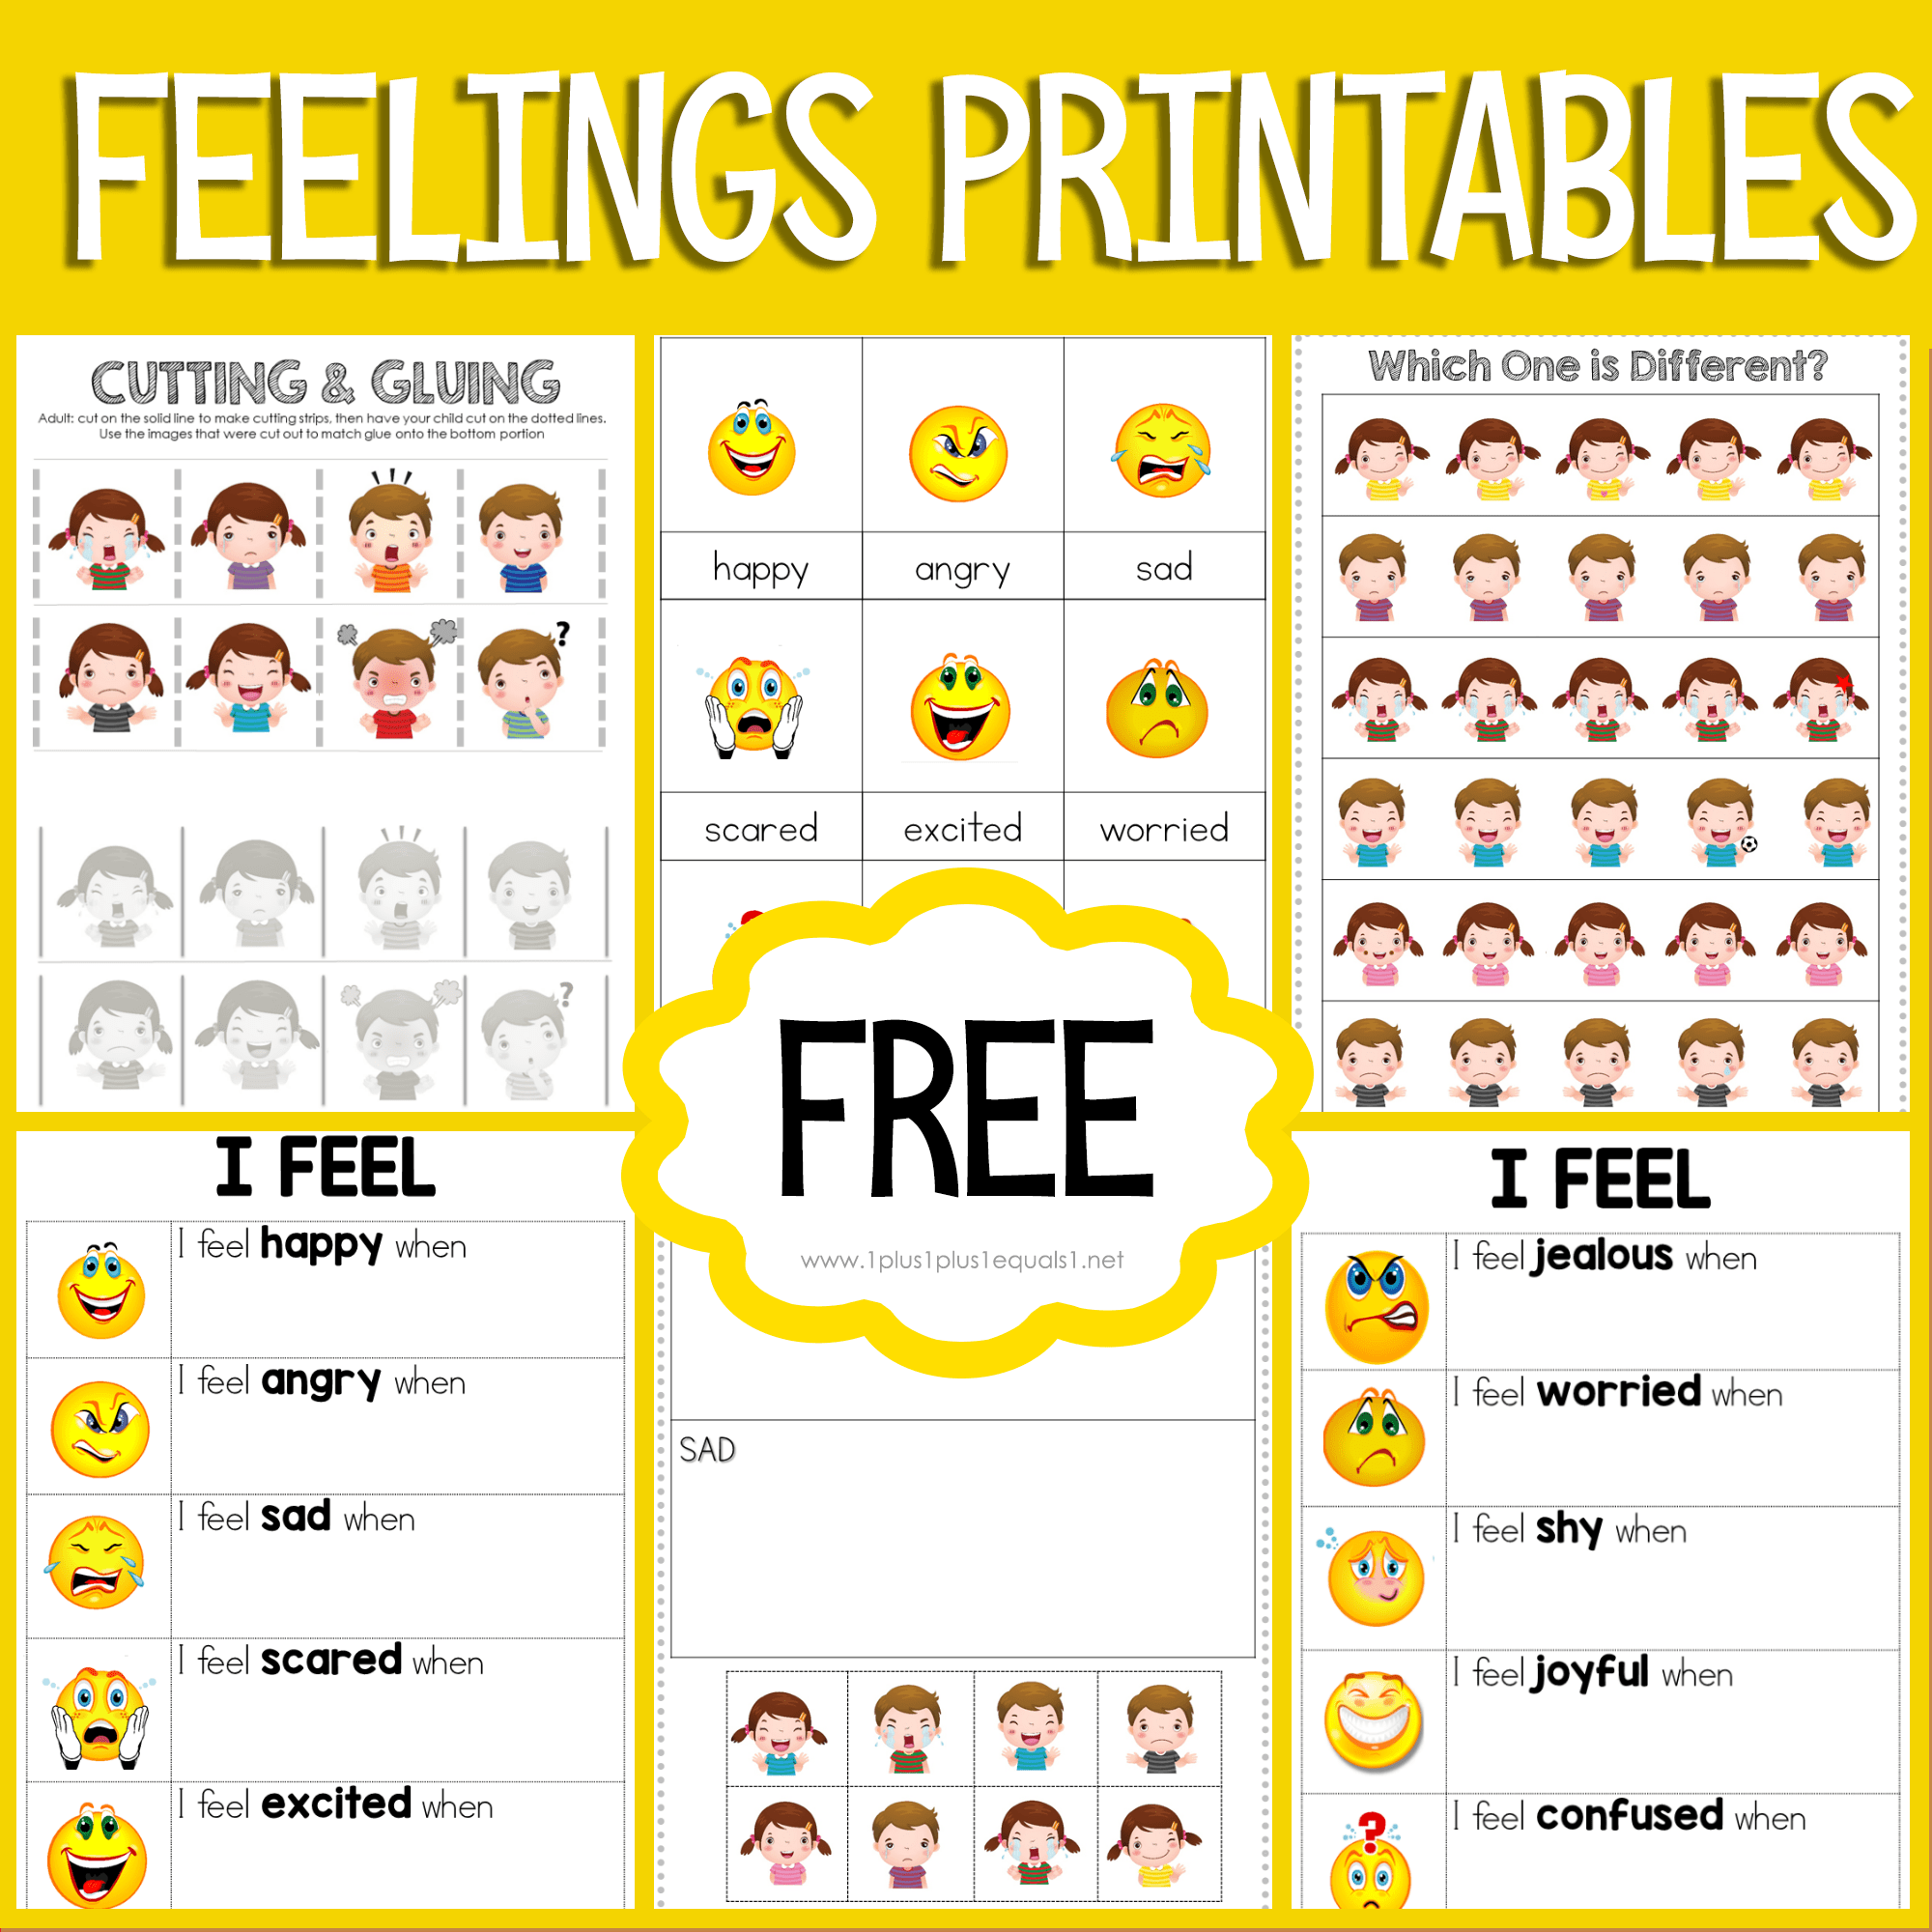 Feelings Printables For Kids